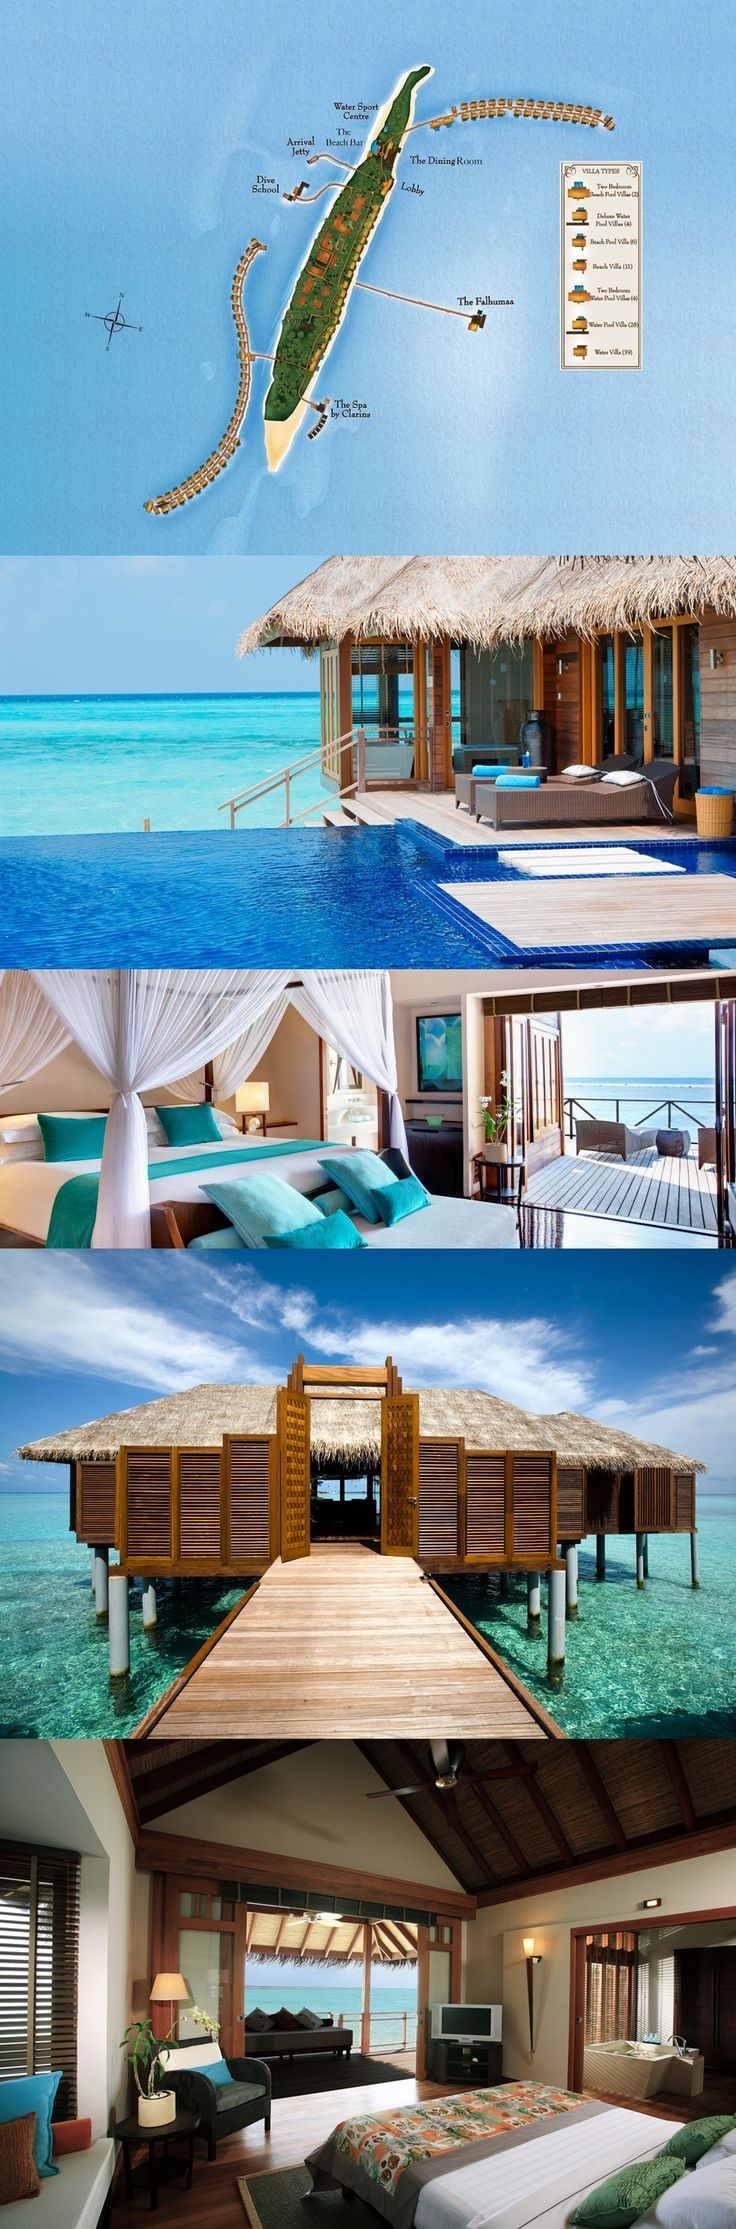 LUX Maldives is nominated as one of the best resort for vacation. Come and plan your vacation at LUX Maldives. #vacation #resort #hotel #sun #sea #beach #beachresort #holiday #travel